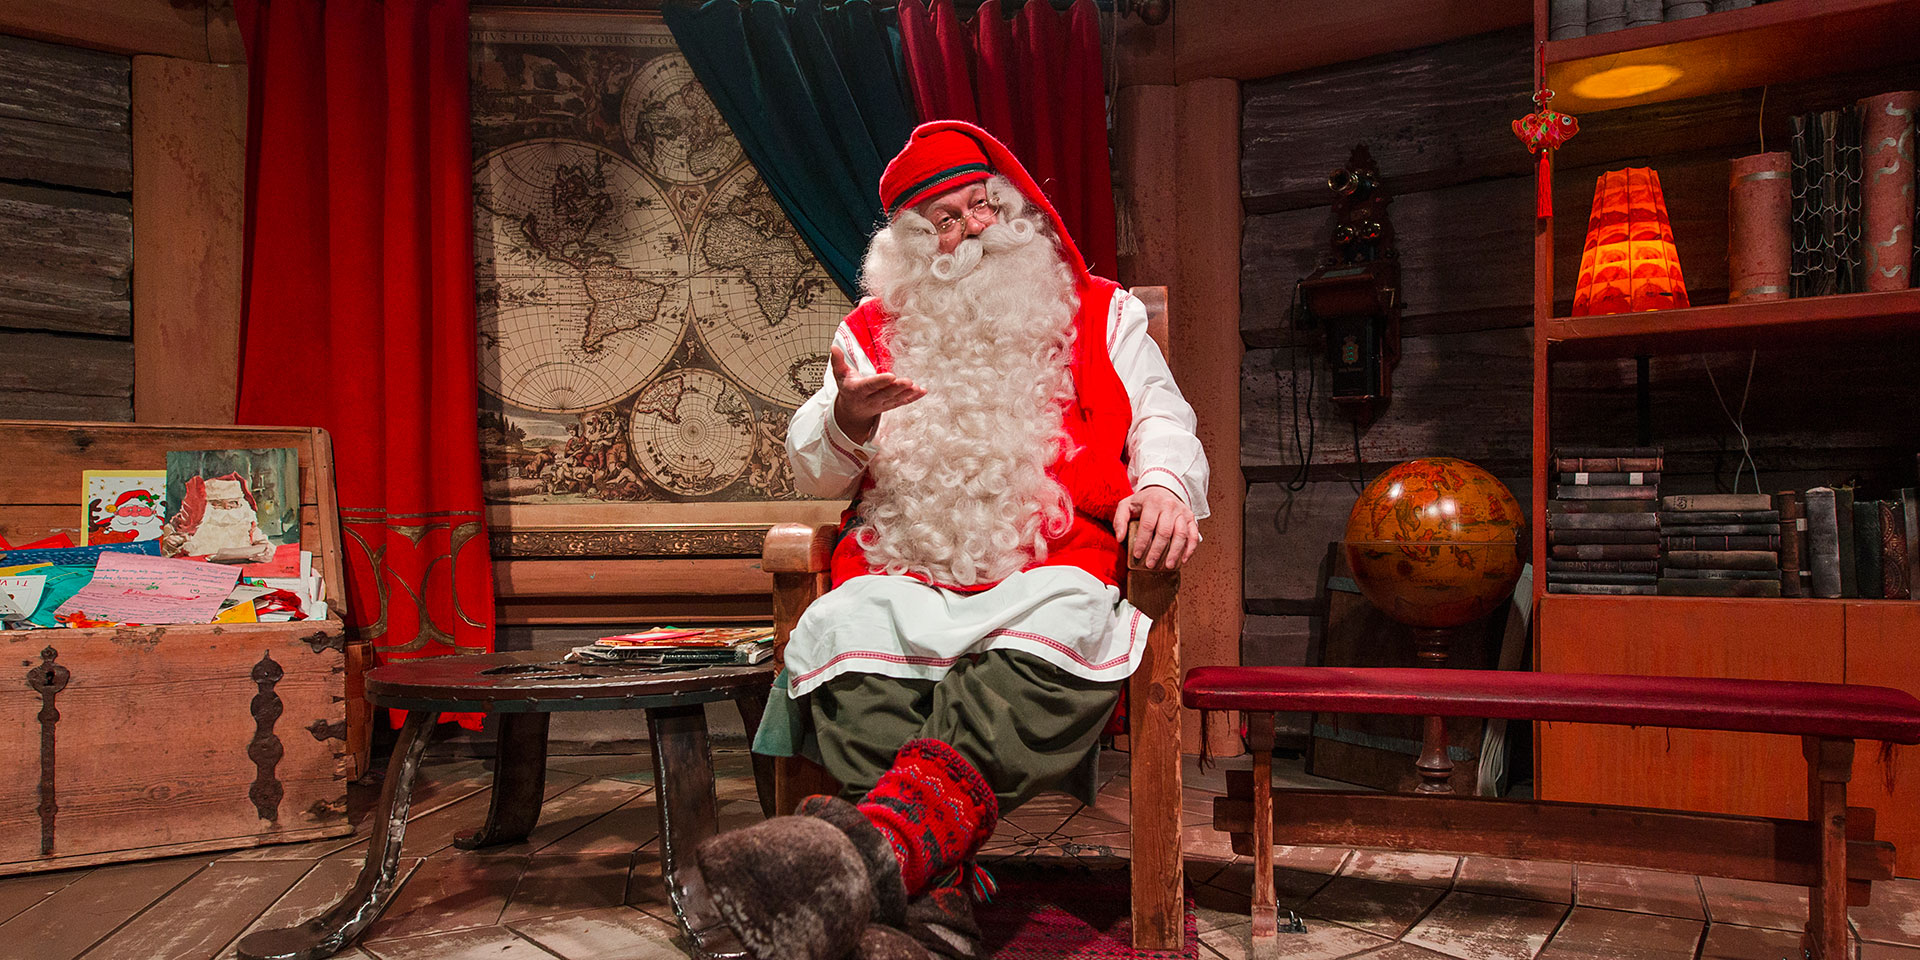 Santa Claus in his office in Rovaniemi, the Official Hometown of Santa Claus in Lapland, Finland